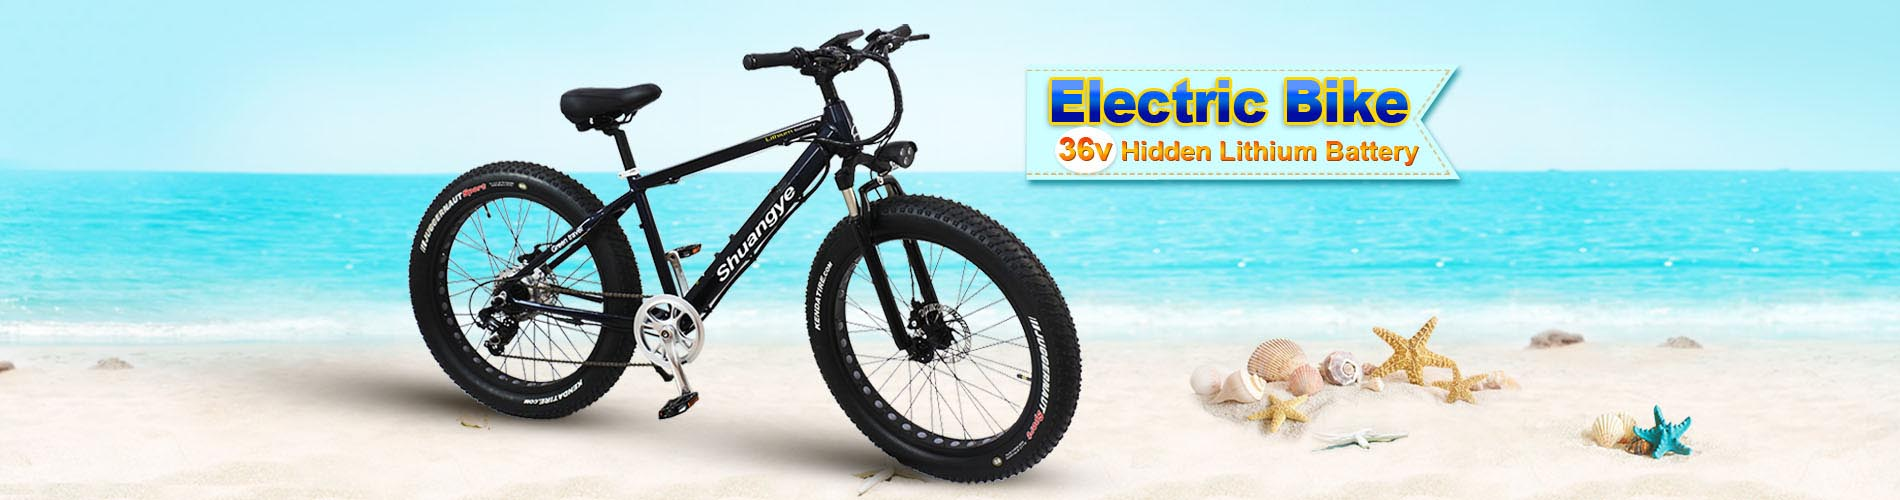 electric bike pedal charging